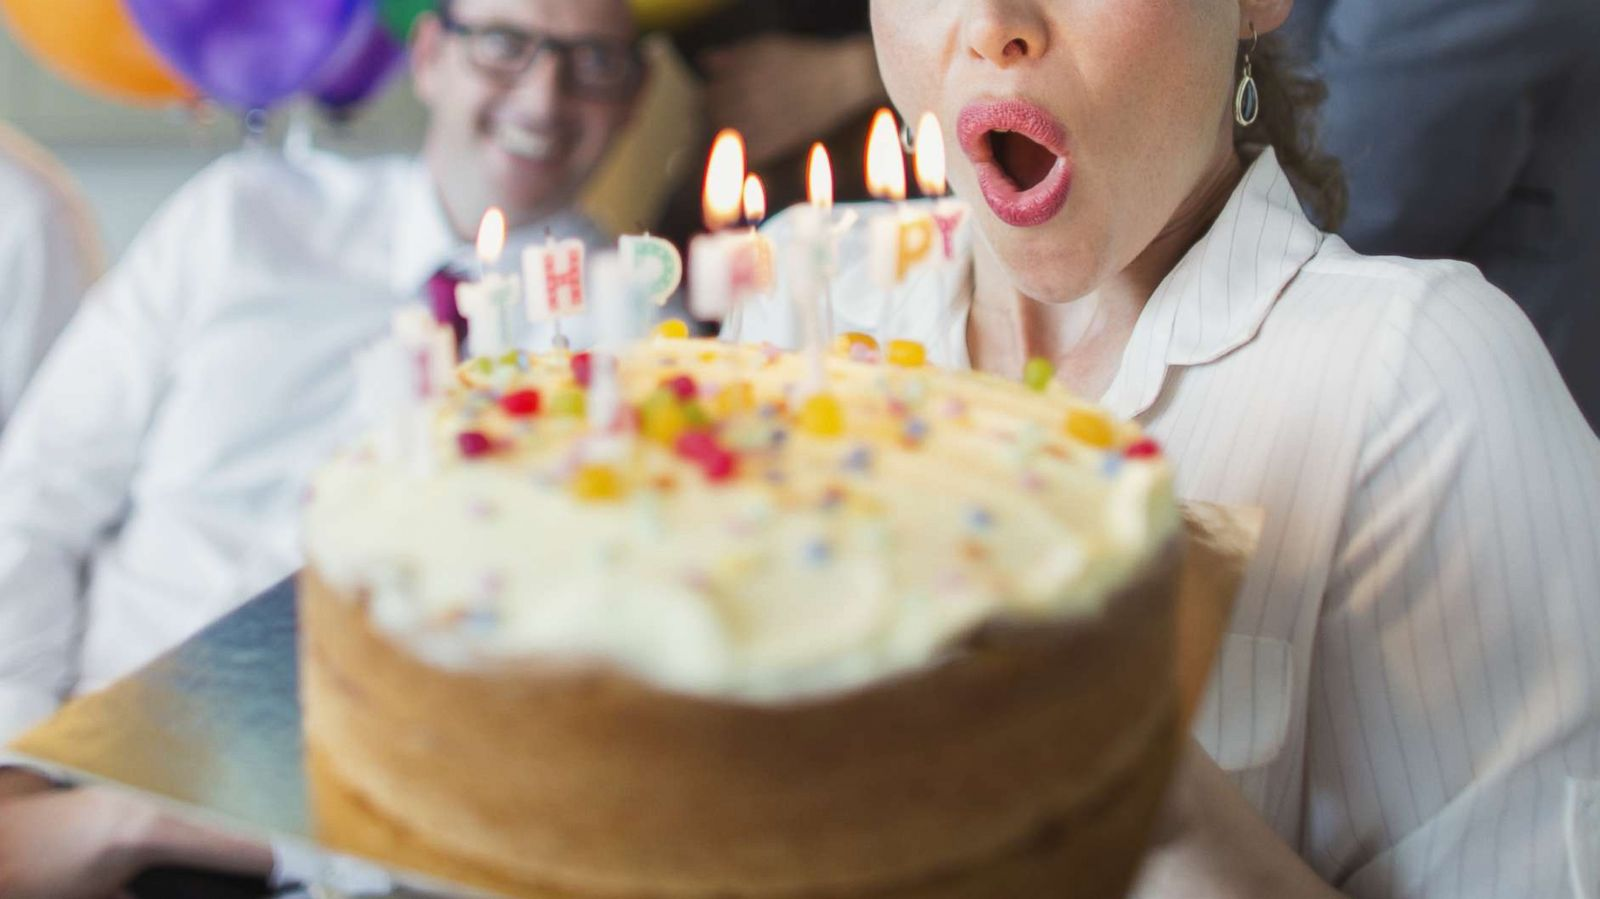 Mitt Romney Said He Blew Out His Birthday Cake Candles Individually Because He Was Sick Does That Help Prevent The Spread Of Germs Abc News